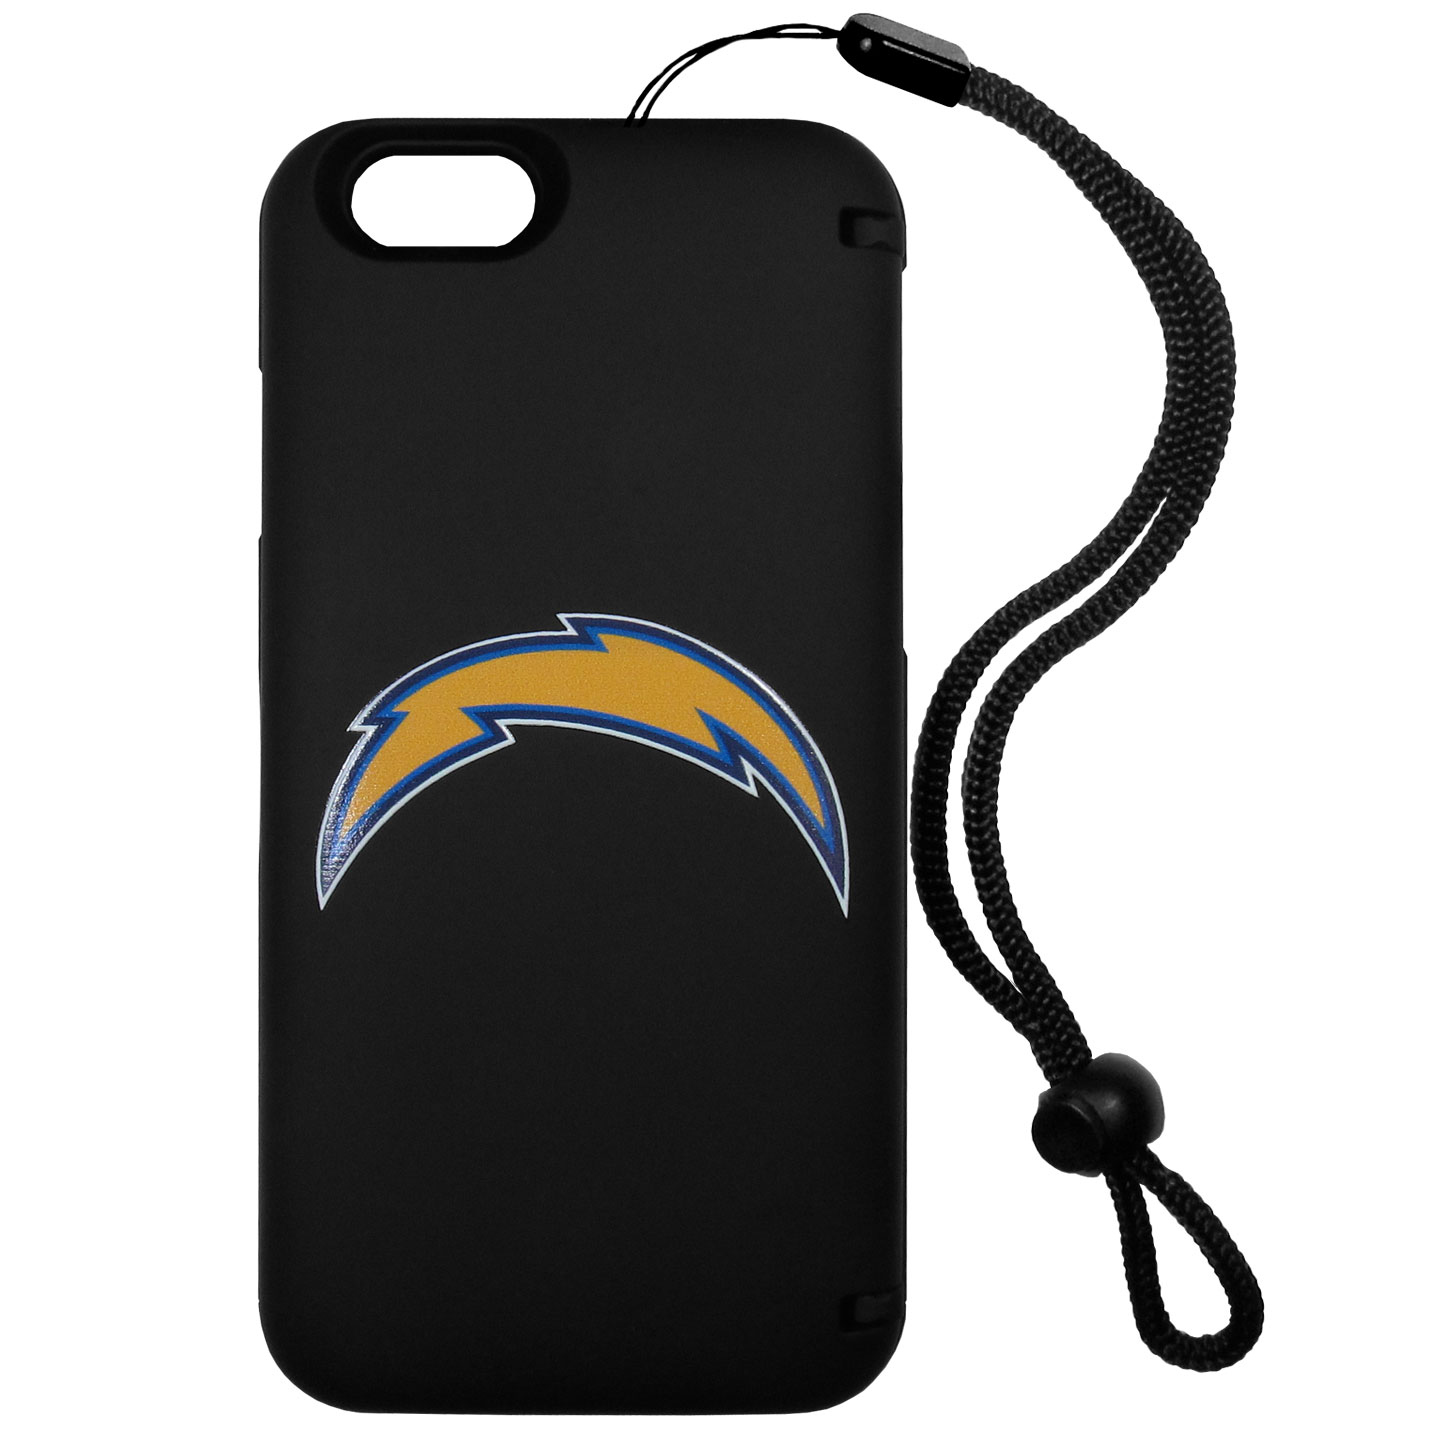 Los Angeles Chargers iPhone 6 Plus Everything Case - This case really does have everything but the kitchen sink! The hidden compartment lets you keep your cards, money and tickets to the big game safe and secure and has a compact mirror so you can make sure your game face is ready to go. It also comes with a kickstand to make chatting and watching videos a breeze. The wrist strap allows you to travel with ease with your everything case. If that's not enough, it also comes with the Los Angeles Chargers logo printed in expert detail on the front.